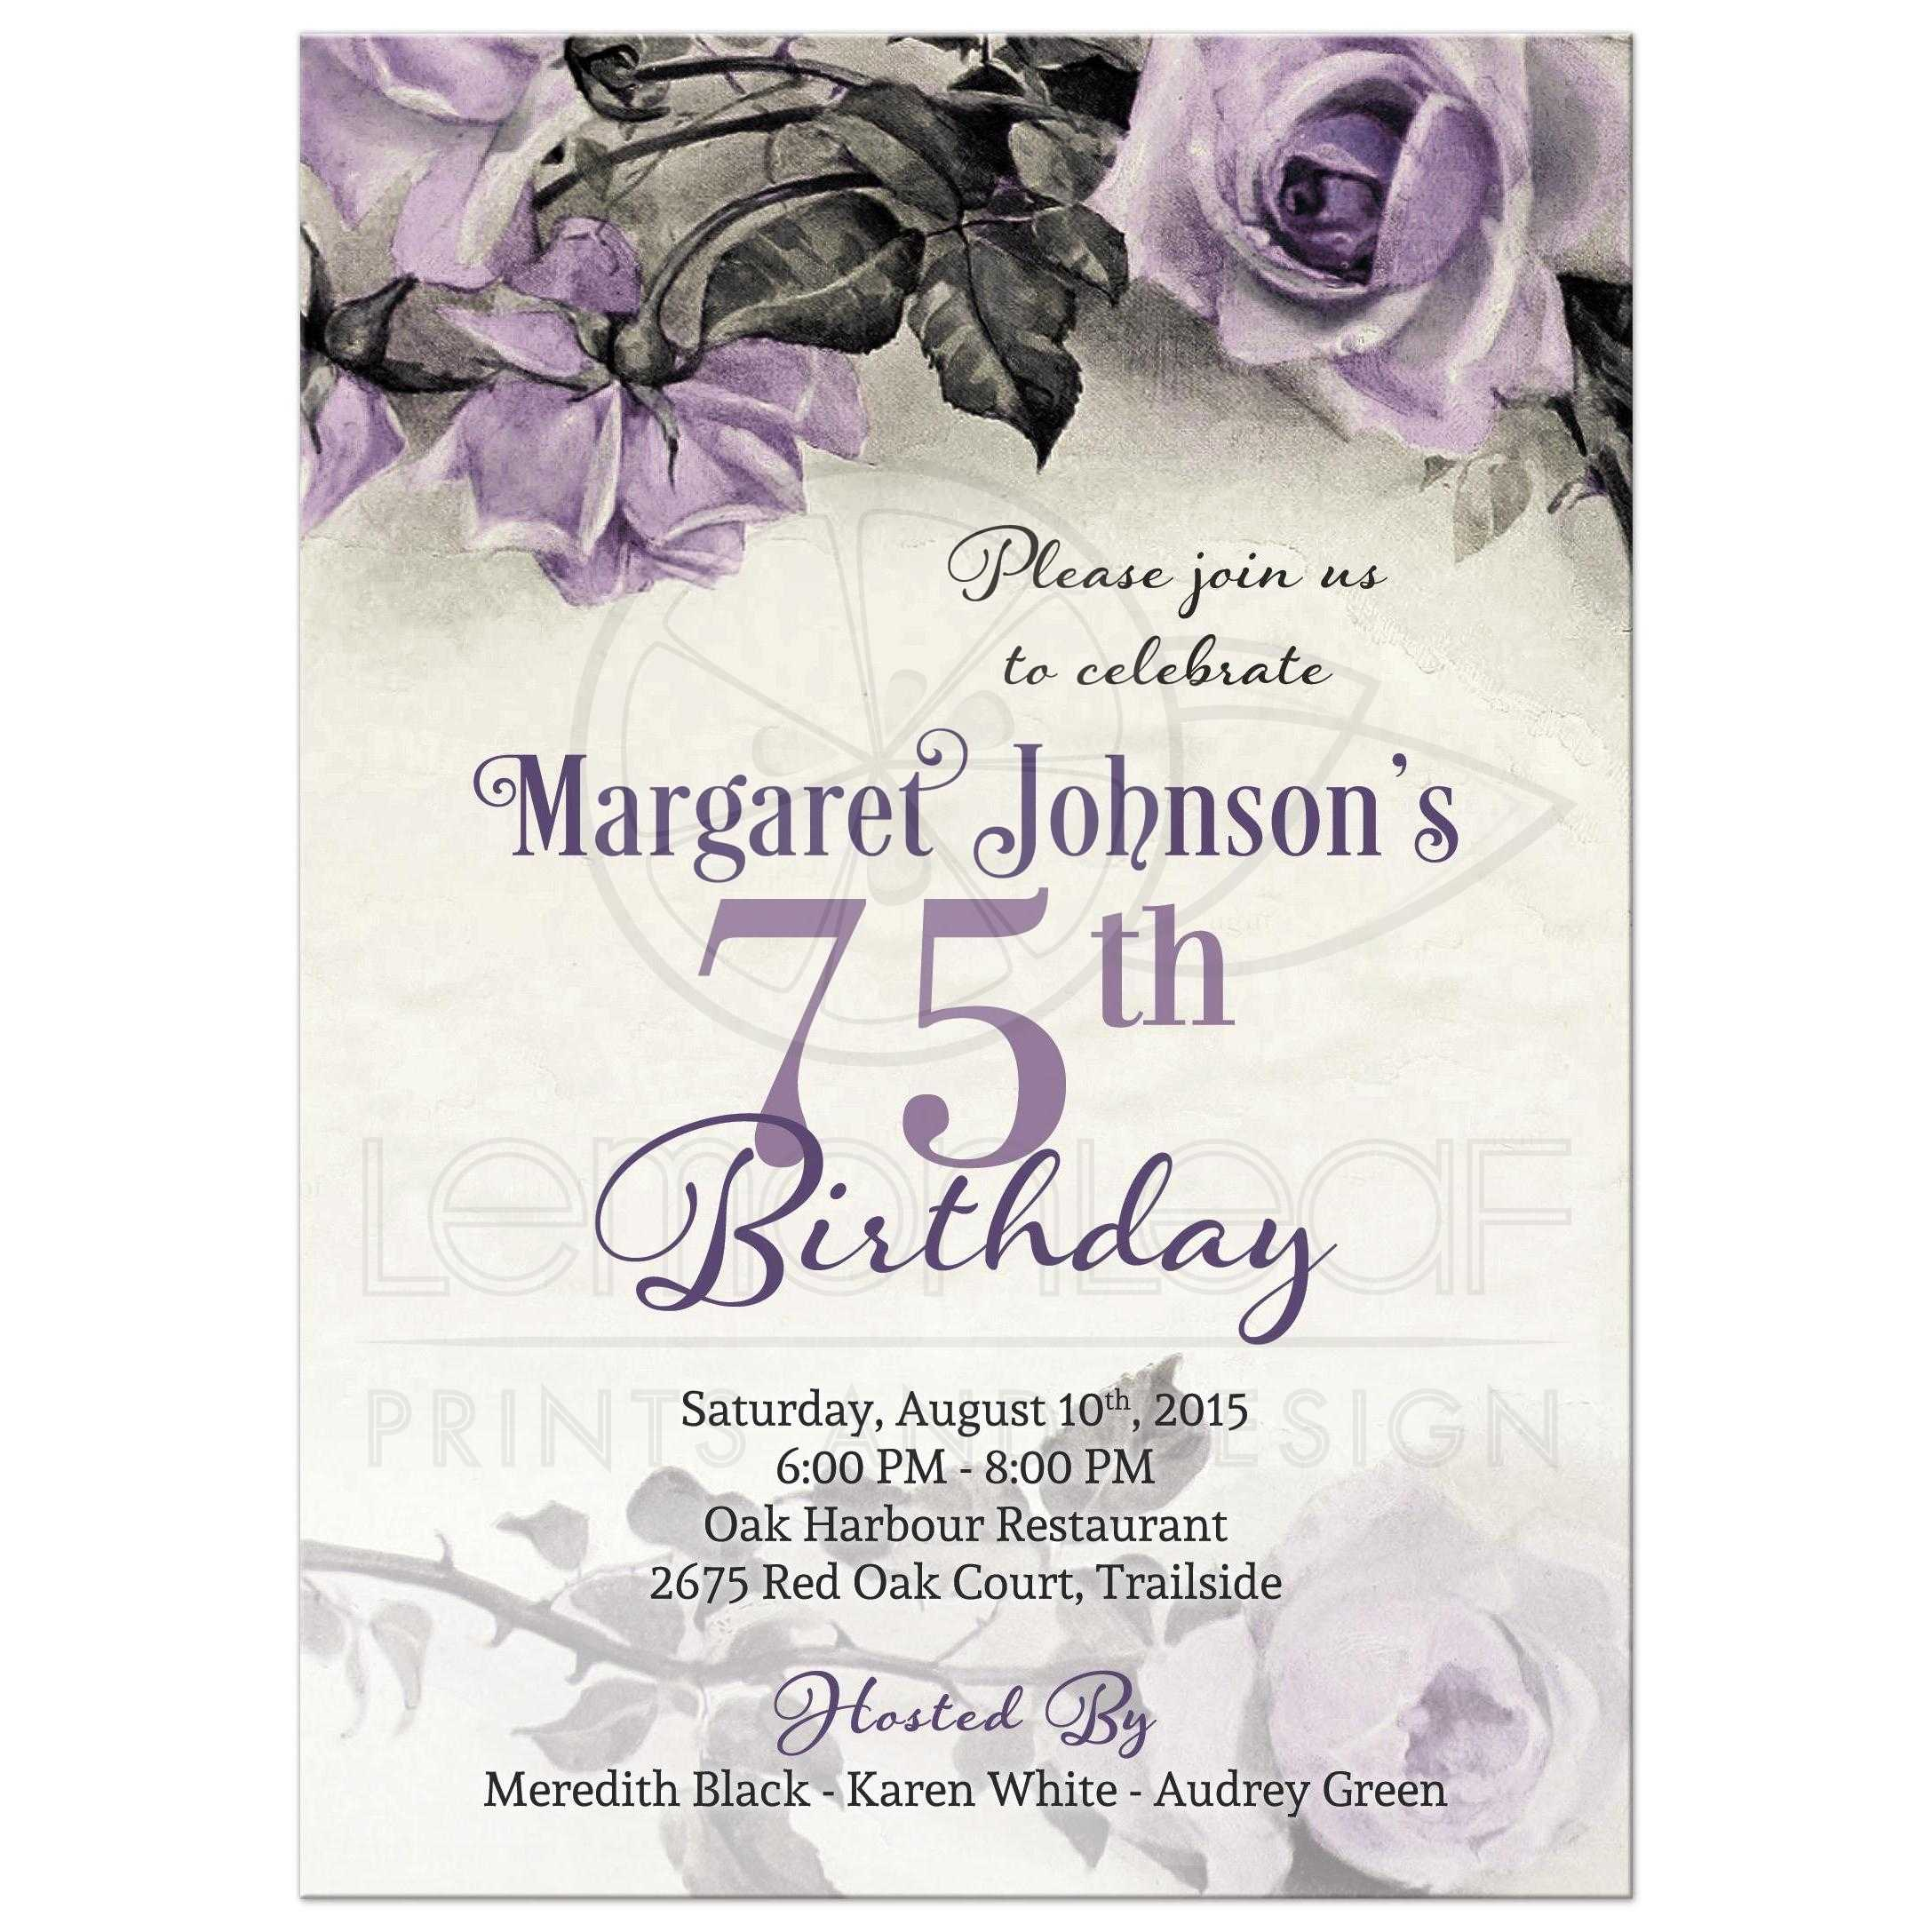 75th birthday invitation vintage purple sterling silver rose vintage purple grey and ivory rose 75th birthday party invitation front bookmarktalkfo Images